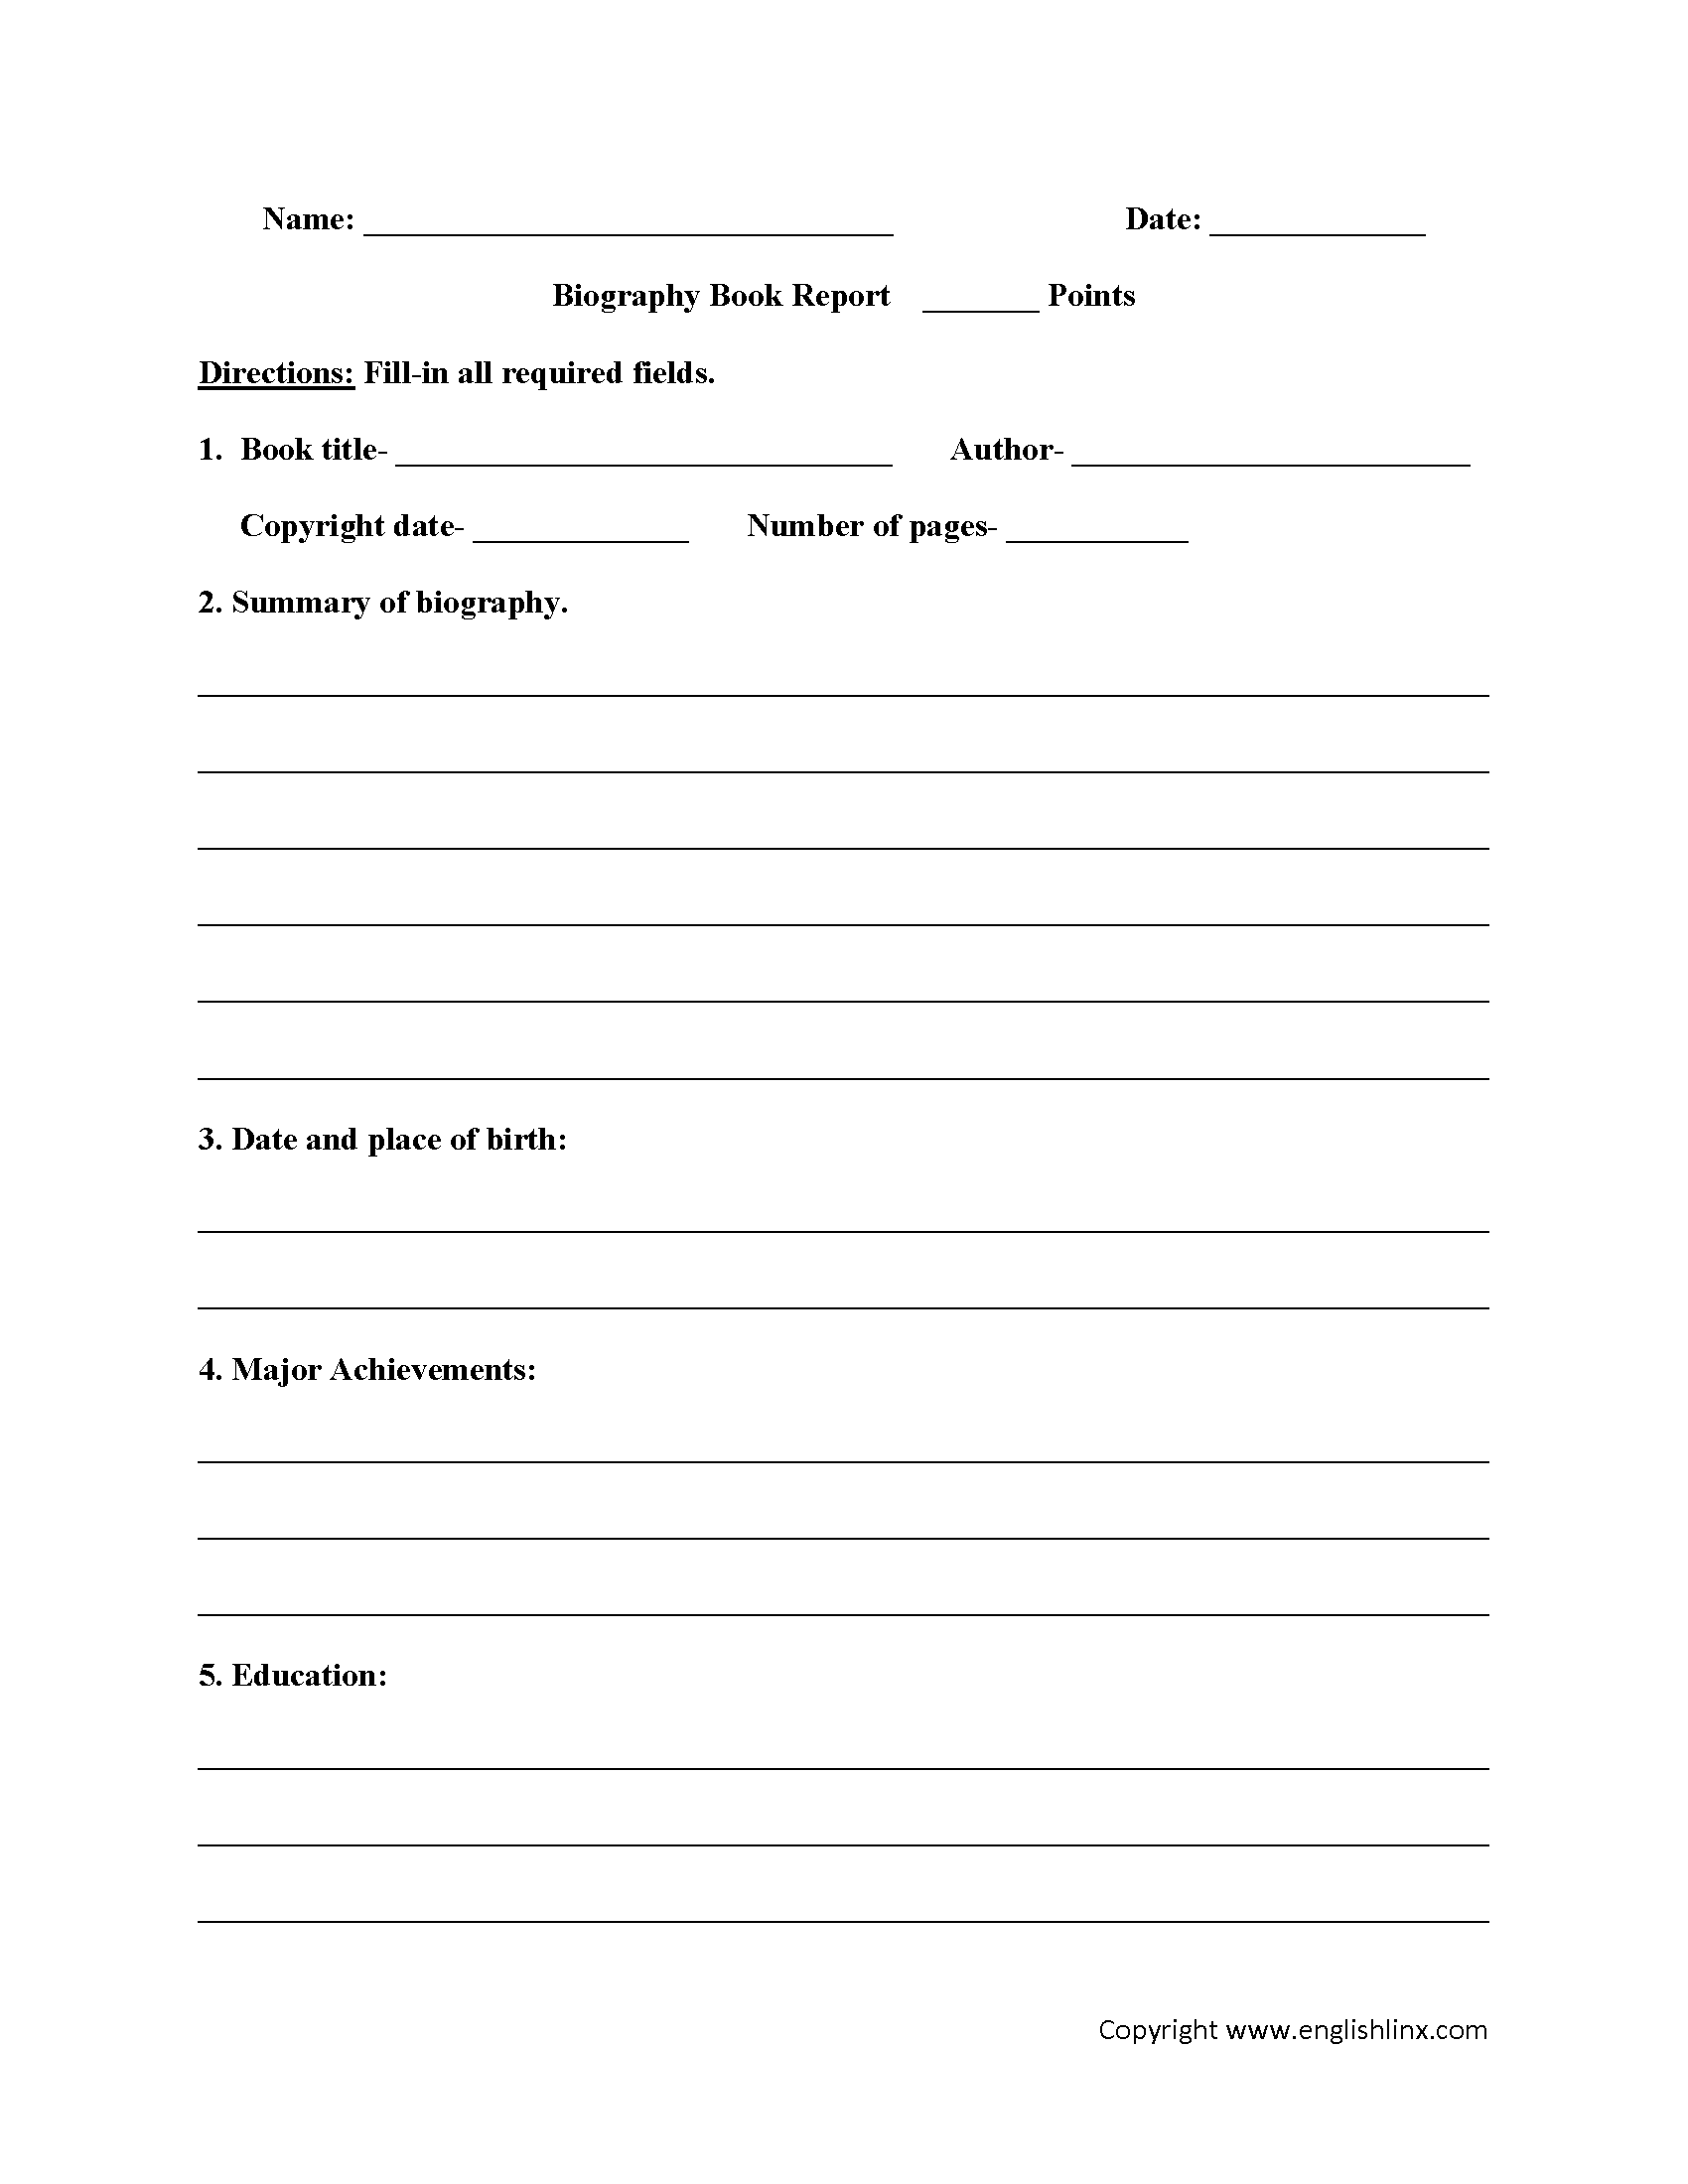 Biography Book Report Worksheets